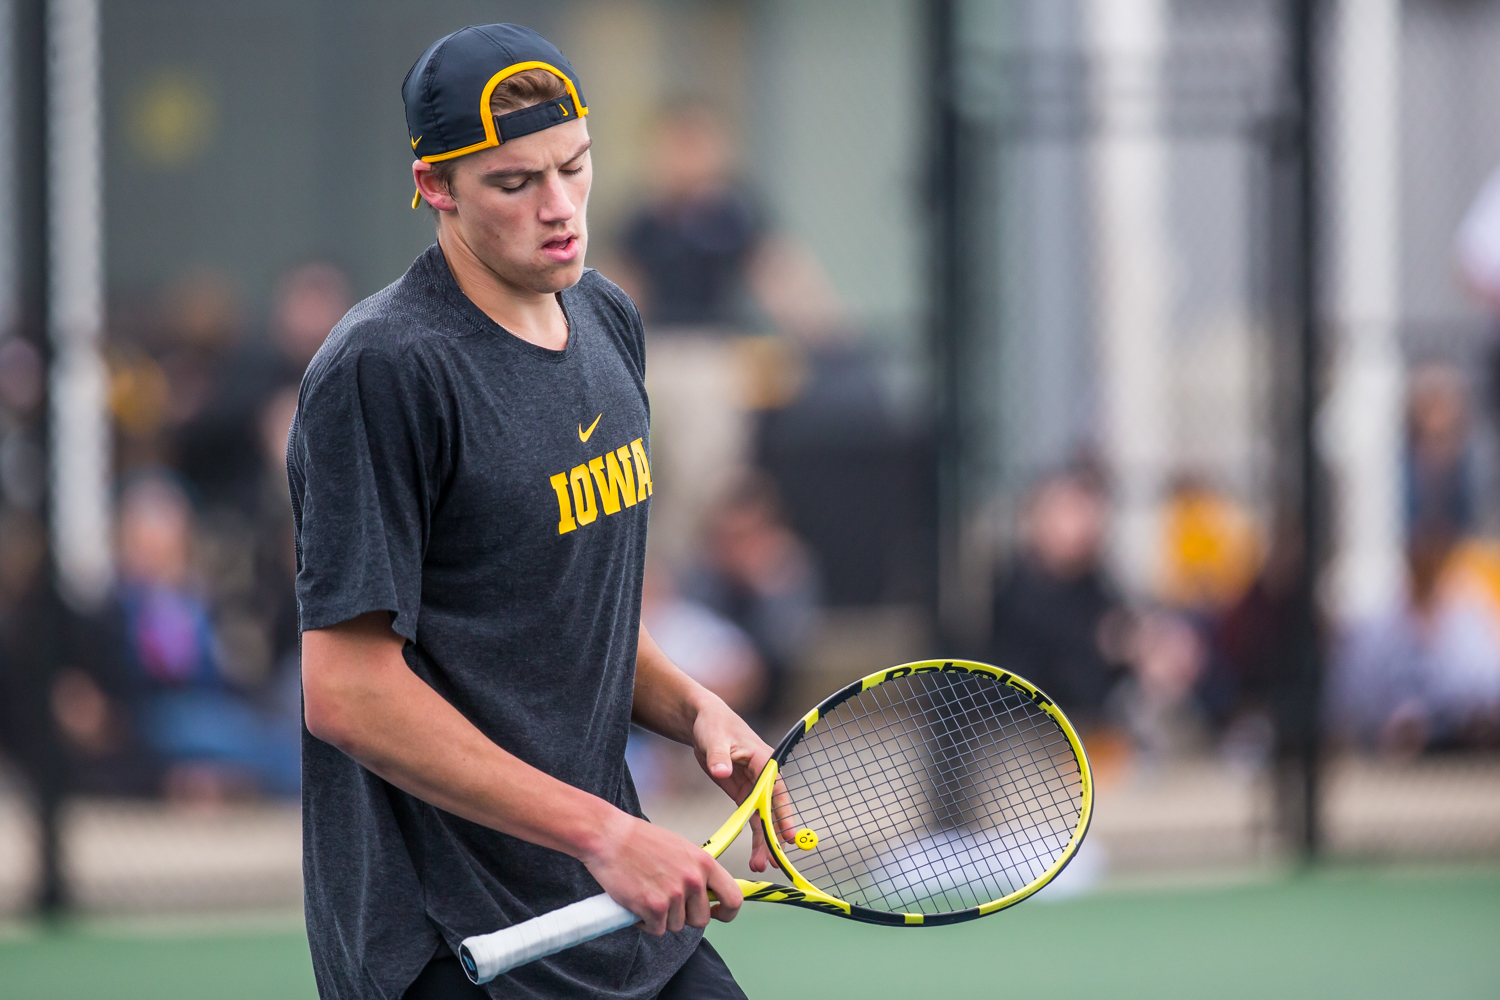 Iowa%27s+Joe+Tyler+reacts+to+a+point+during+a+men%27s+tennis+match+between+Iowa+and+Ohio+State+at+the+HTRC+on+Sunday%2C+April+7%2C+2019.+The+Buckeyes+defeated+the+Hawkeyes%2C+4-1.